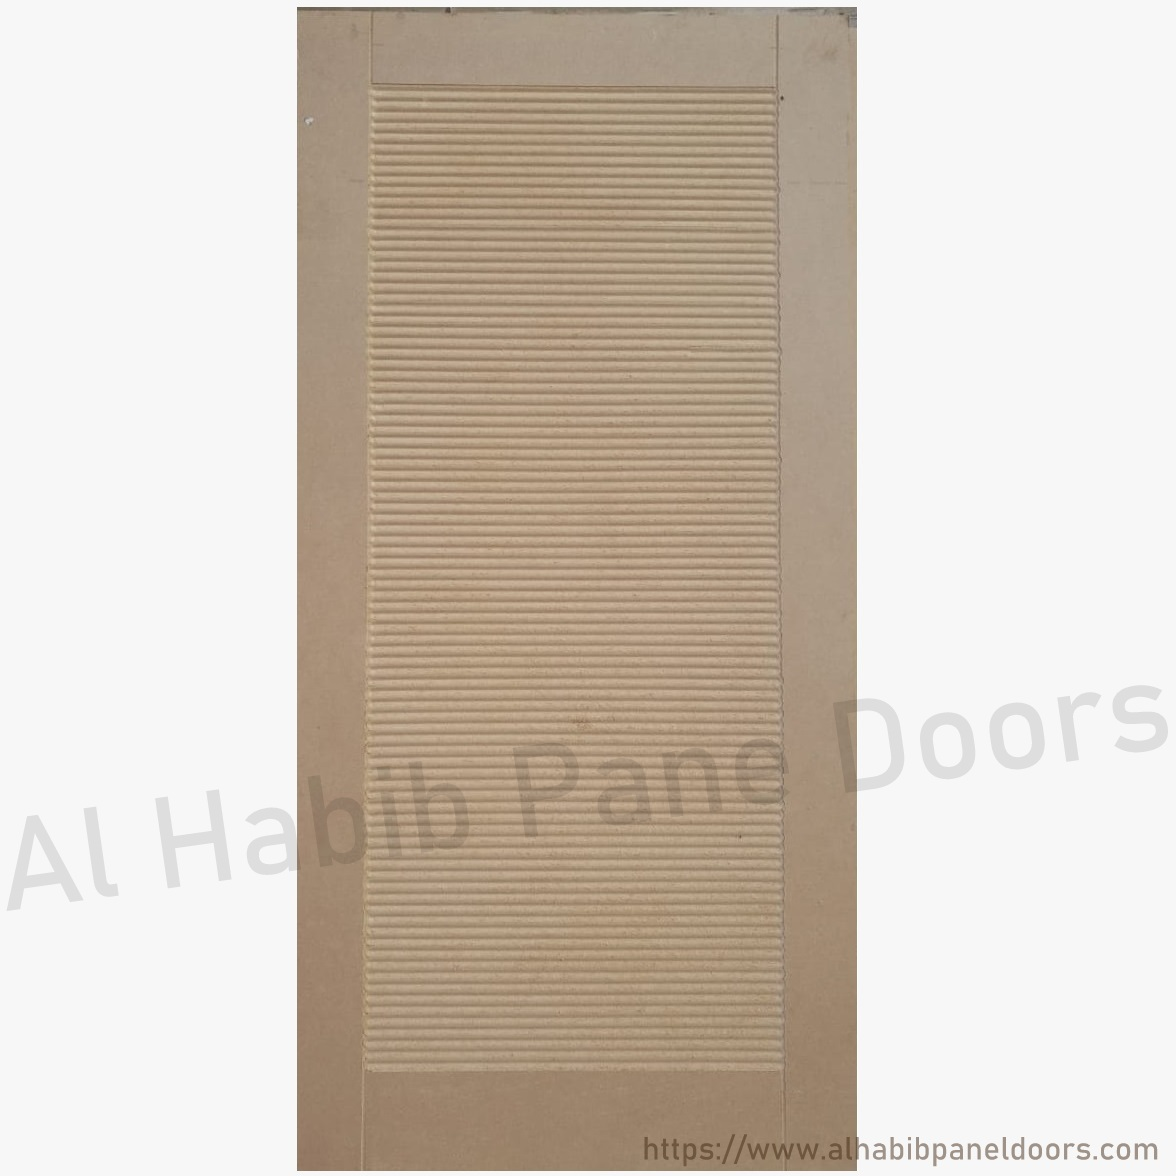 Mdf Louver Design Door Also Called Kangi Wala Design